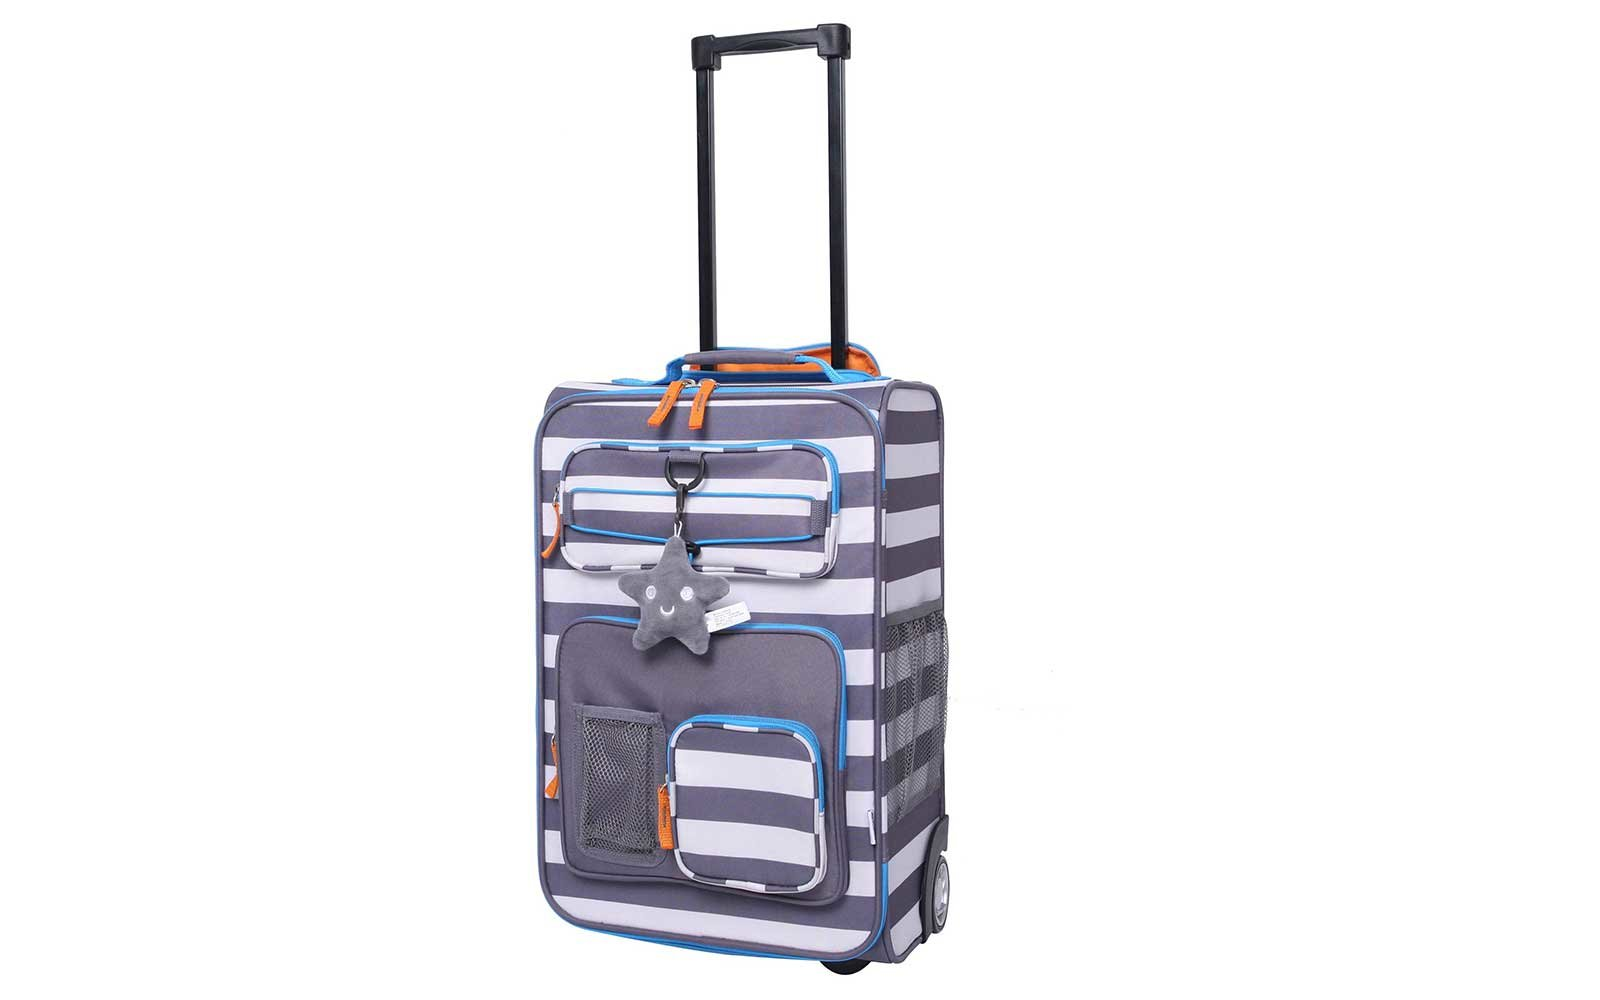 The Best Kids' Luggage for Family Vacation | Travel   Leisure